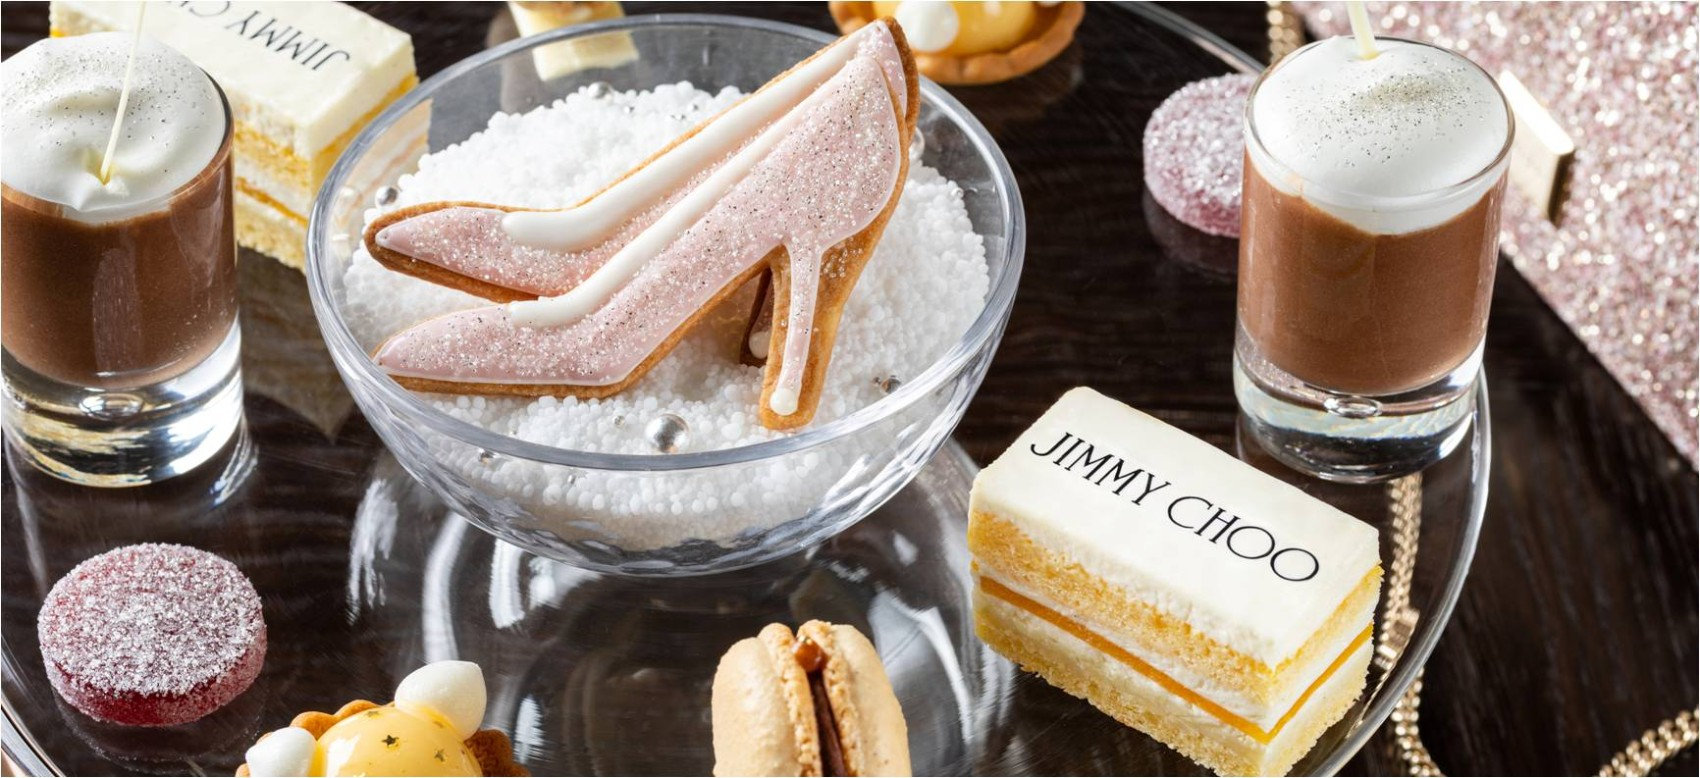 MOTIF AFTERNOON TEA COLLECTION WITH JIMMY CHOO